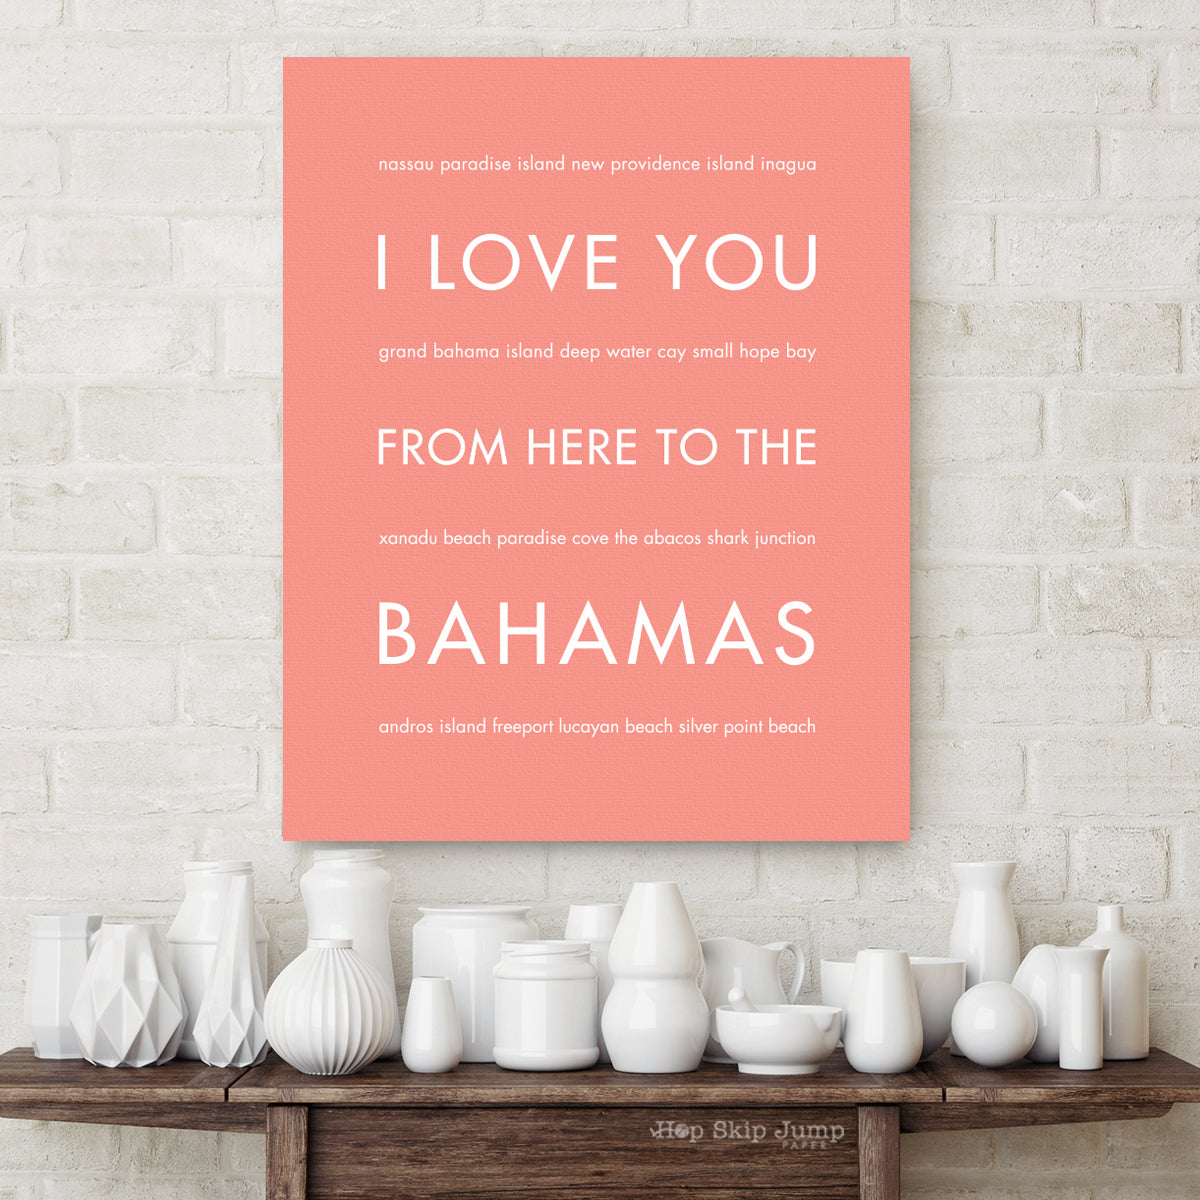 PRODUCT REVIEW: I Love You From Here to the Bahamas